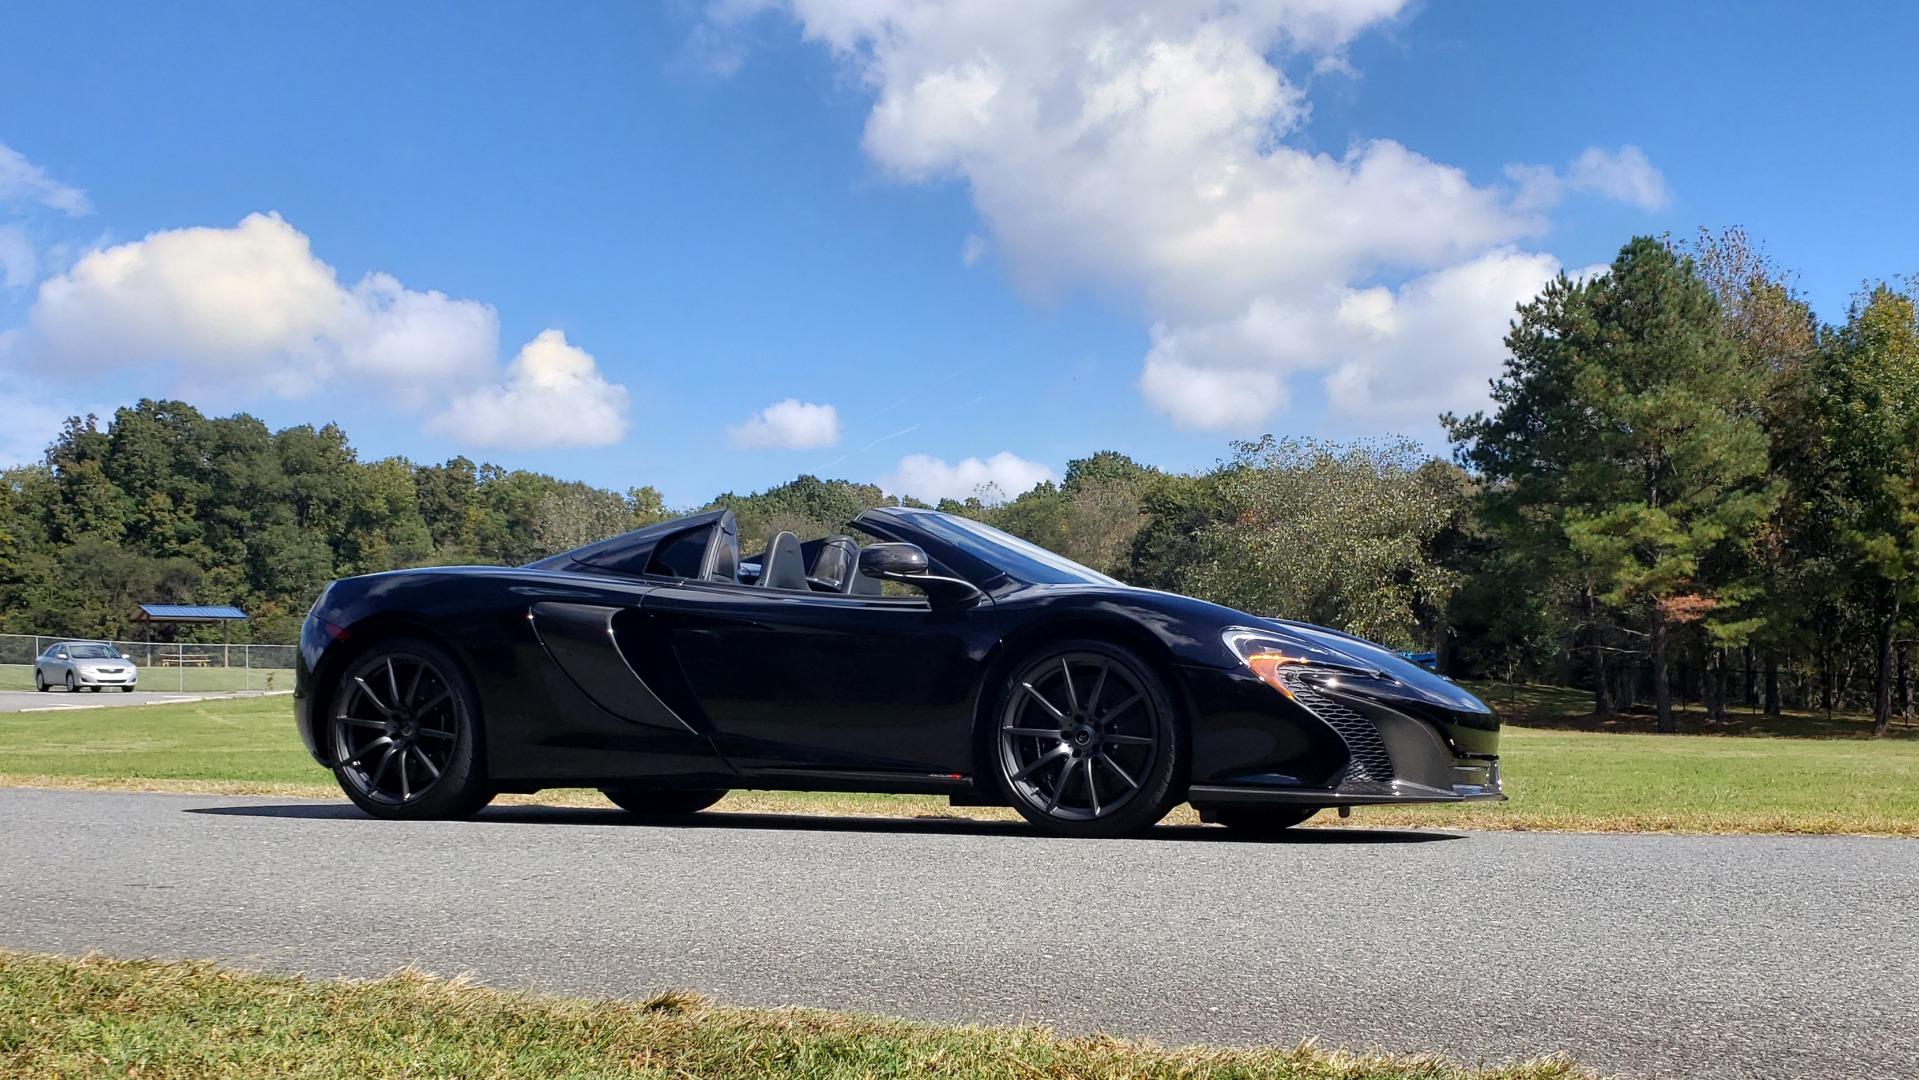 Used 2016 McLaren 650S SPIDER / 641HP / PARK SENSORS / LOW MILES / 1-OWNER for sale Sold at Formula Imports in Charlotte NC 28227 15